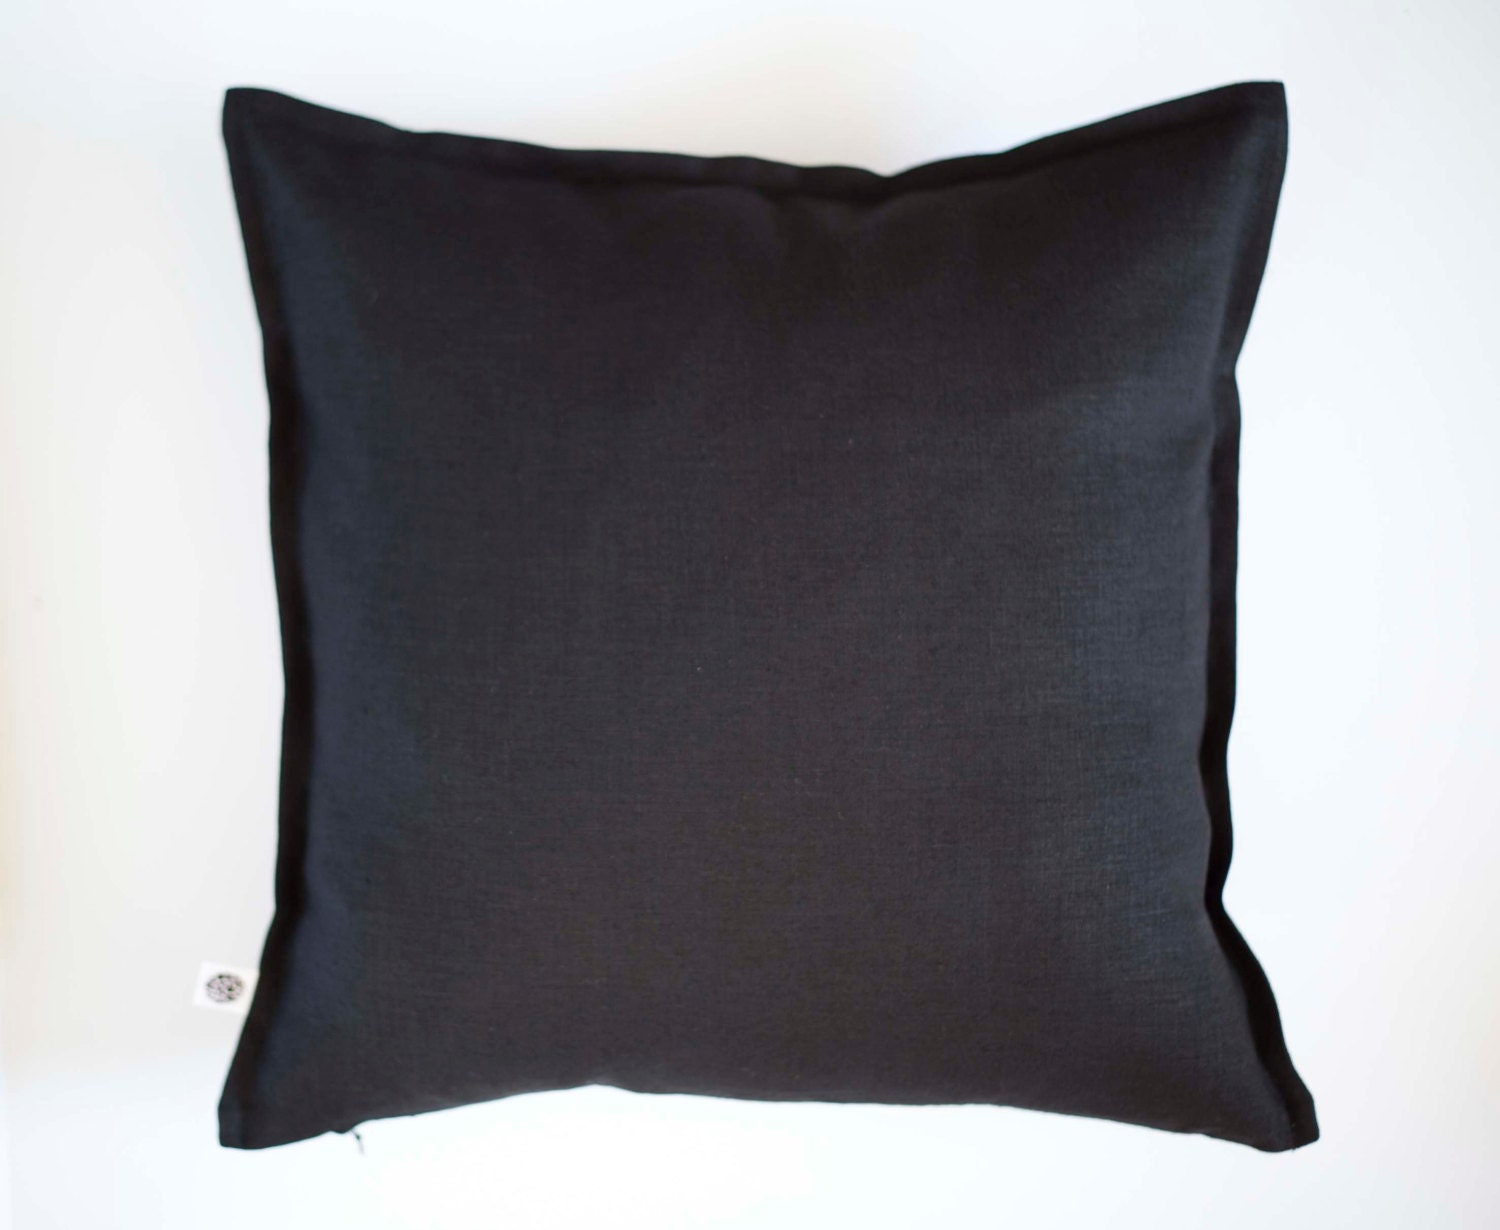 Black pillow cover for decorative pillows sewn in custom size